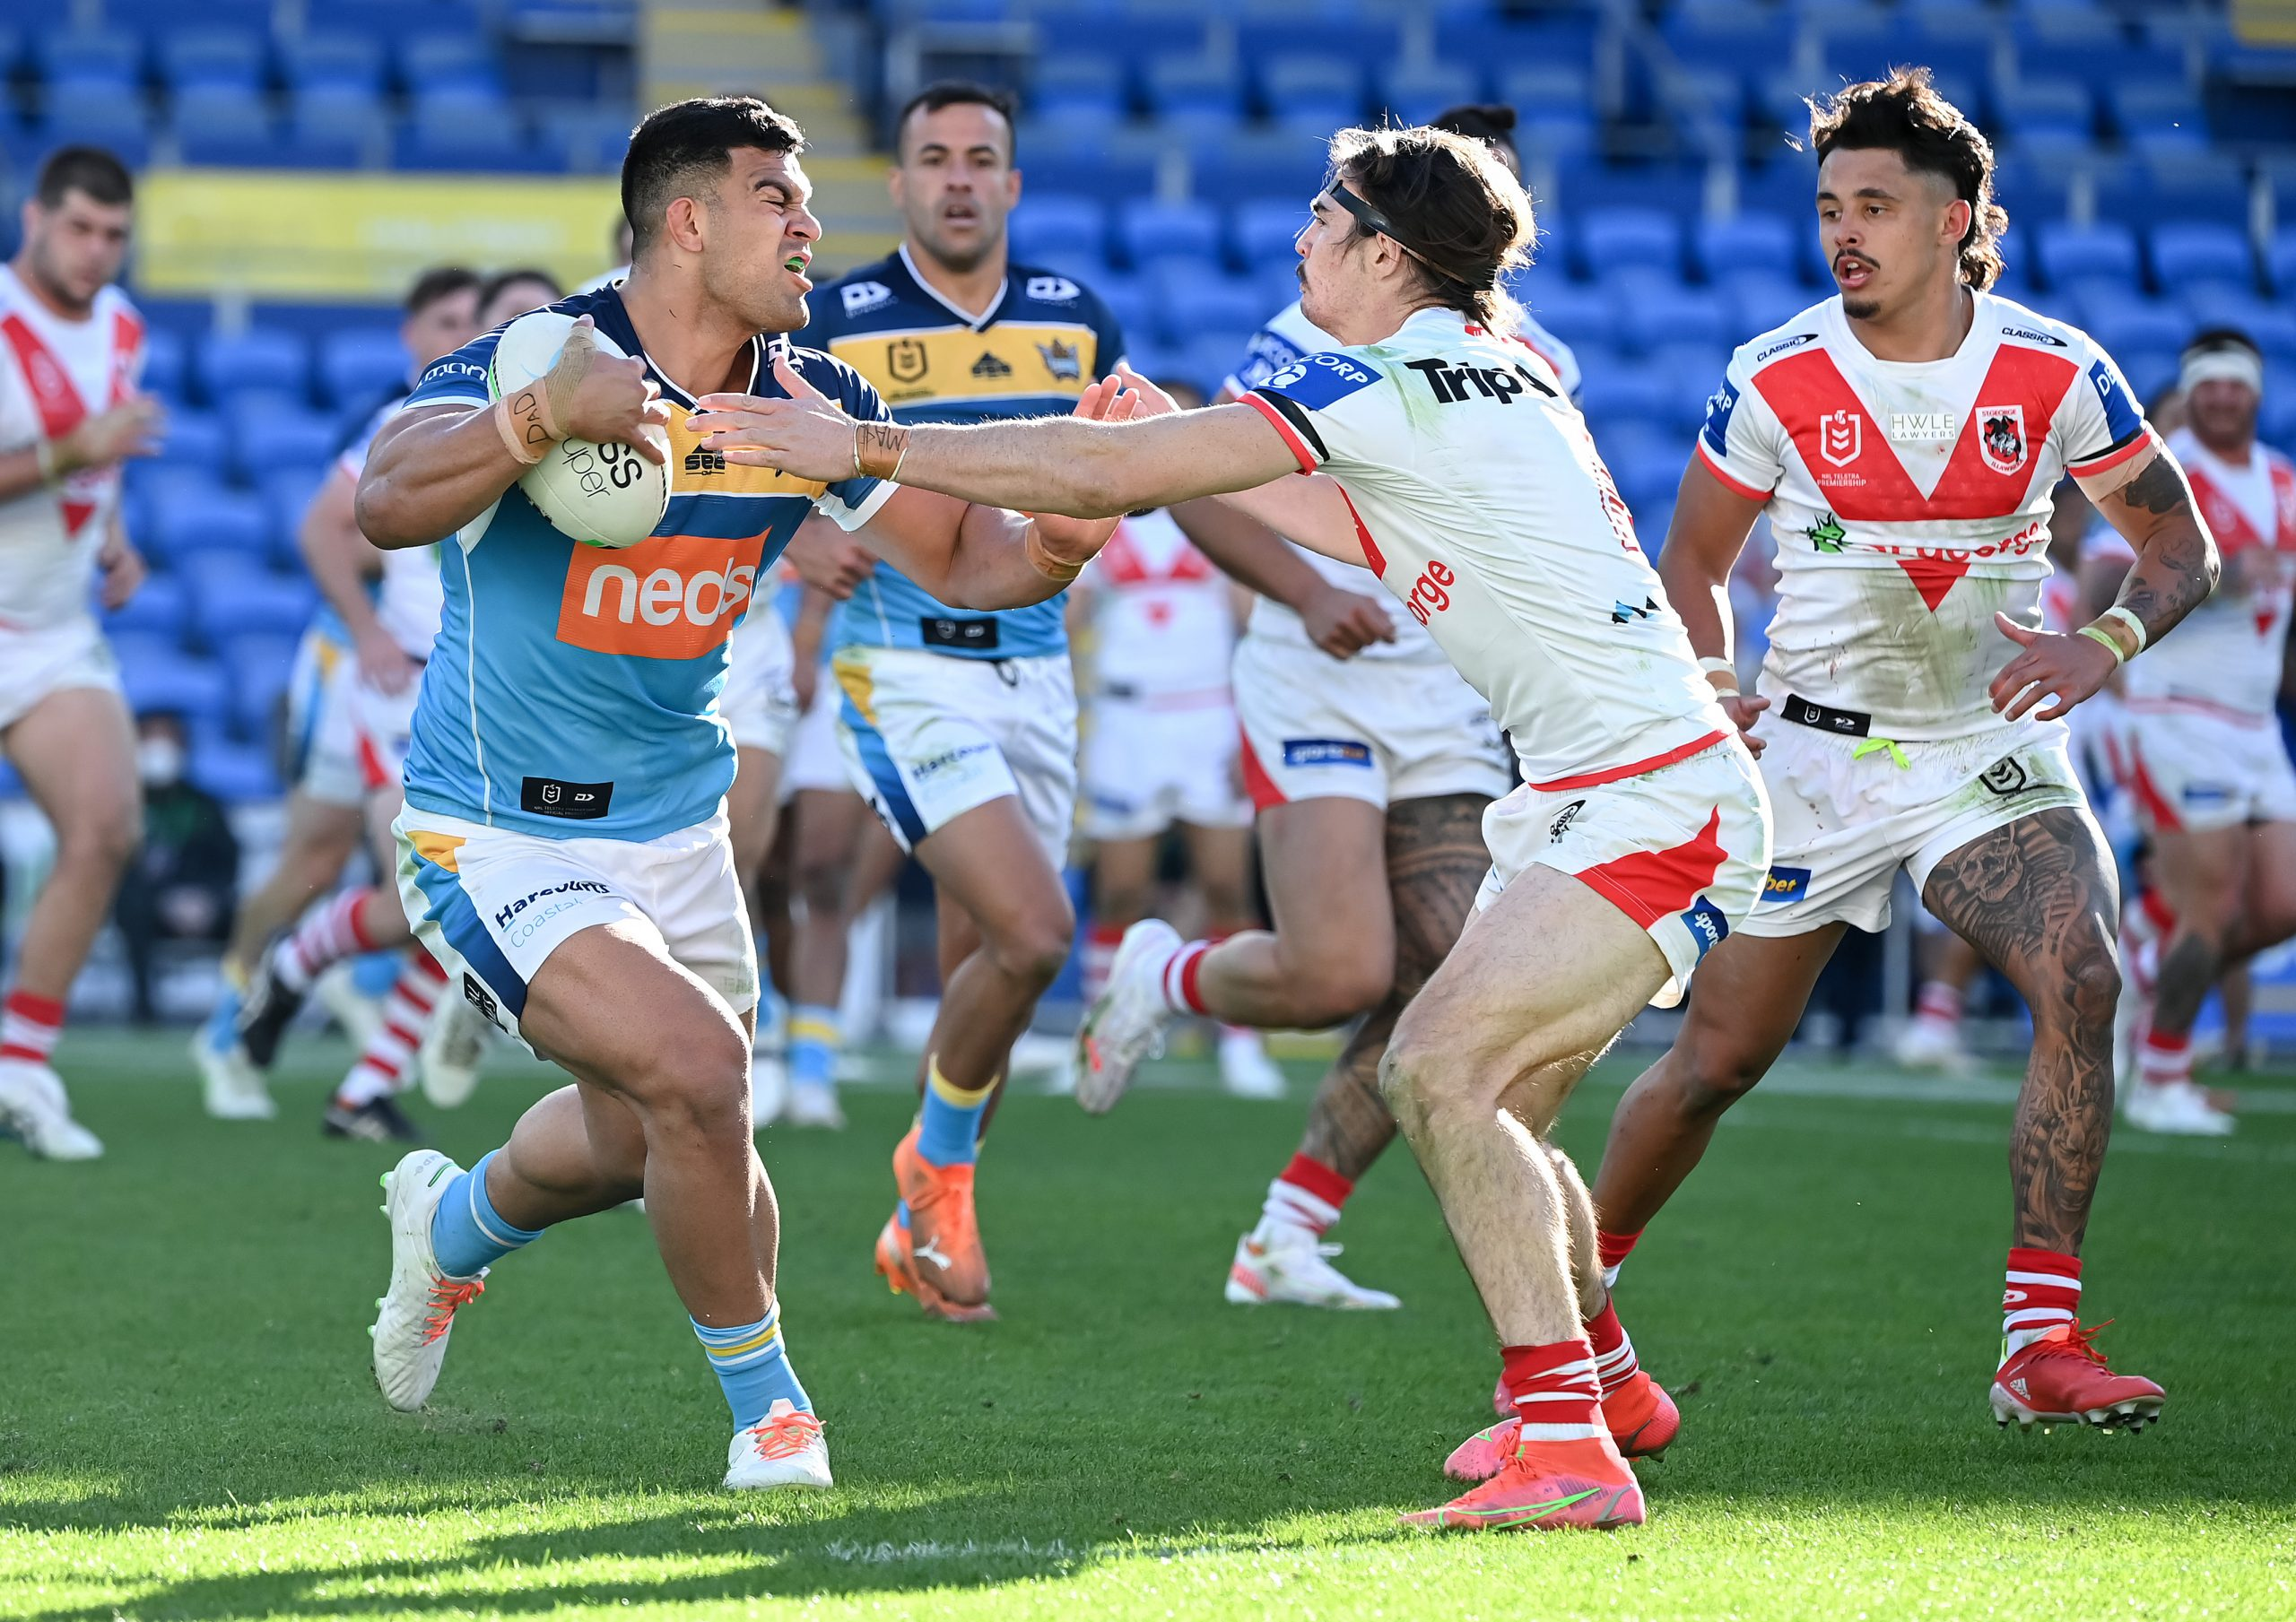 Fifita stars for Titans to help keep Finals hope alive